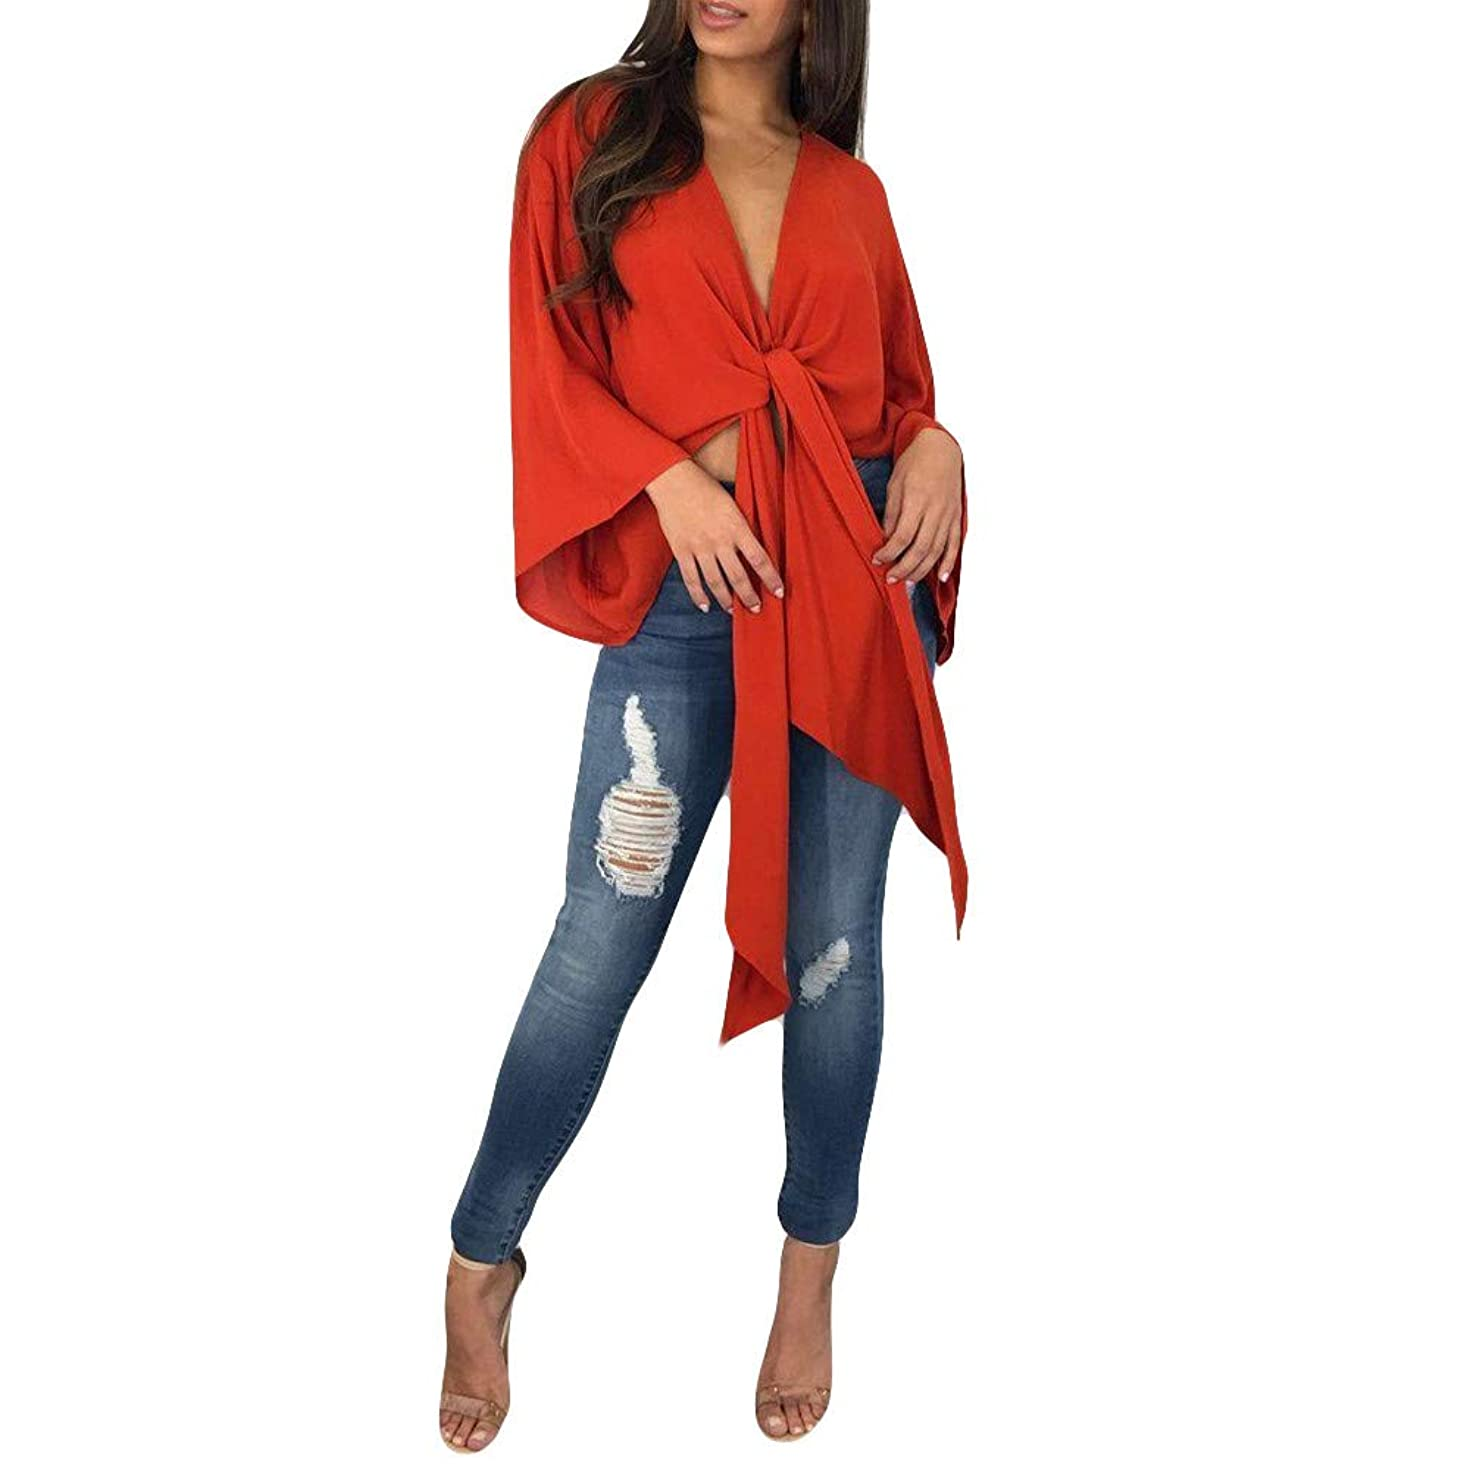 ZOMUSAR Womens Long Bell Sleeve Open Top Tops Blouse Tie Knot Bow Crop Shrug Cardigan